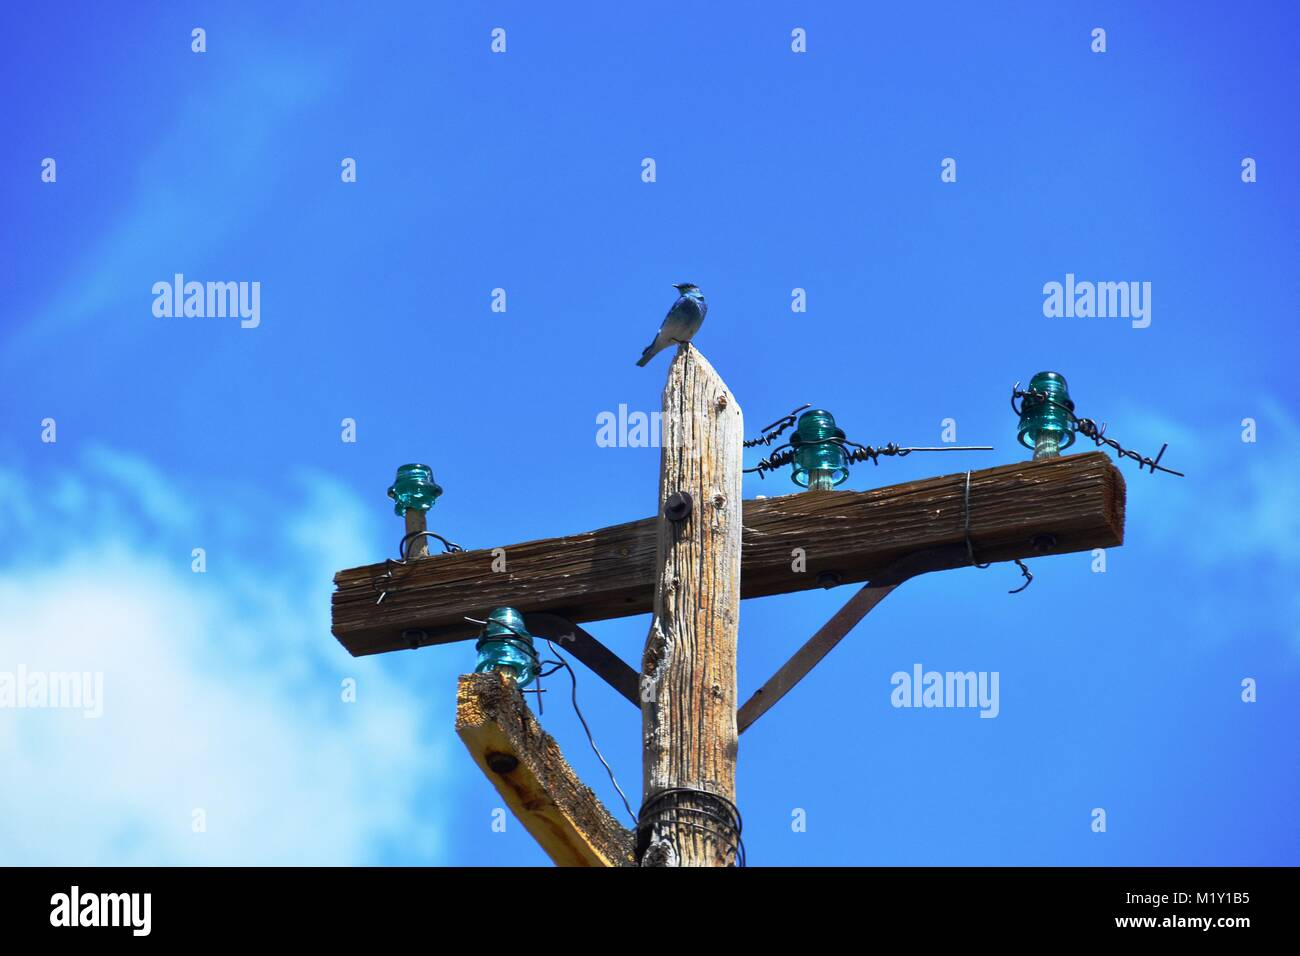 Masttop of telephone wire - Stock Image